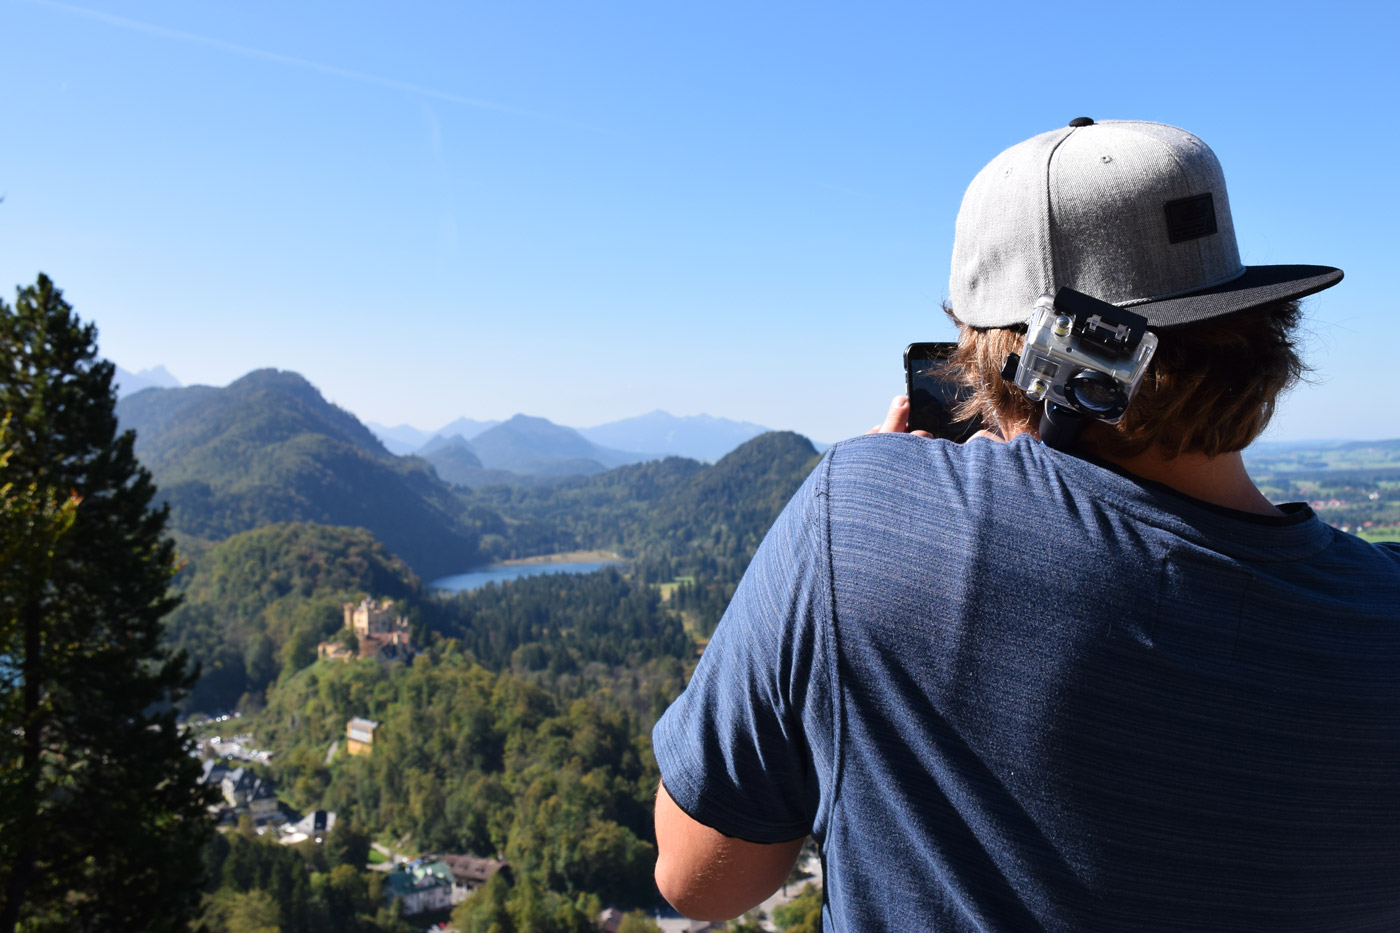 That's my brother, balancing a Go Pro on a selfie stick while instagramming a photo of a castle in Bavaria #doubletrouble